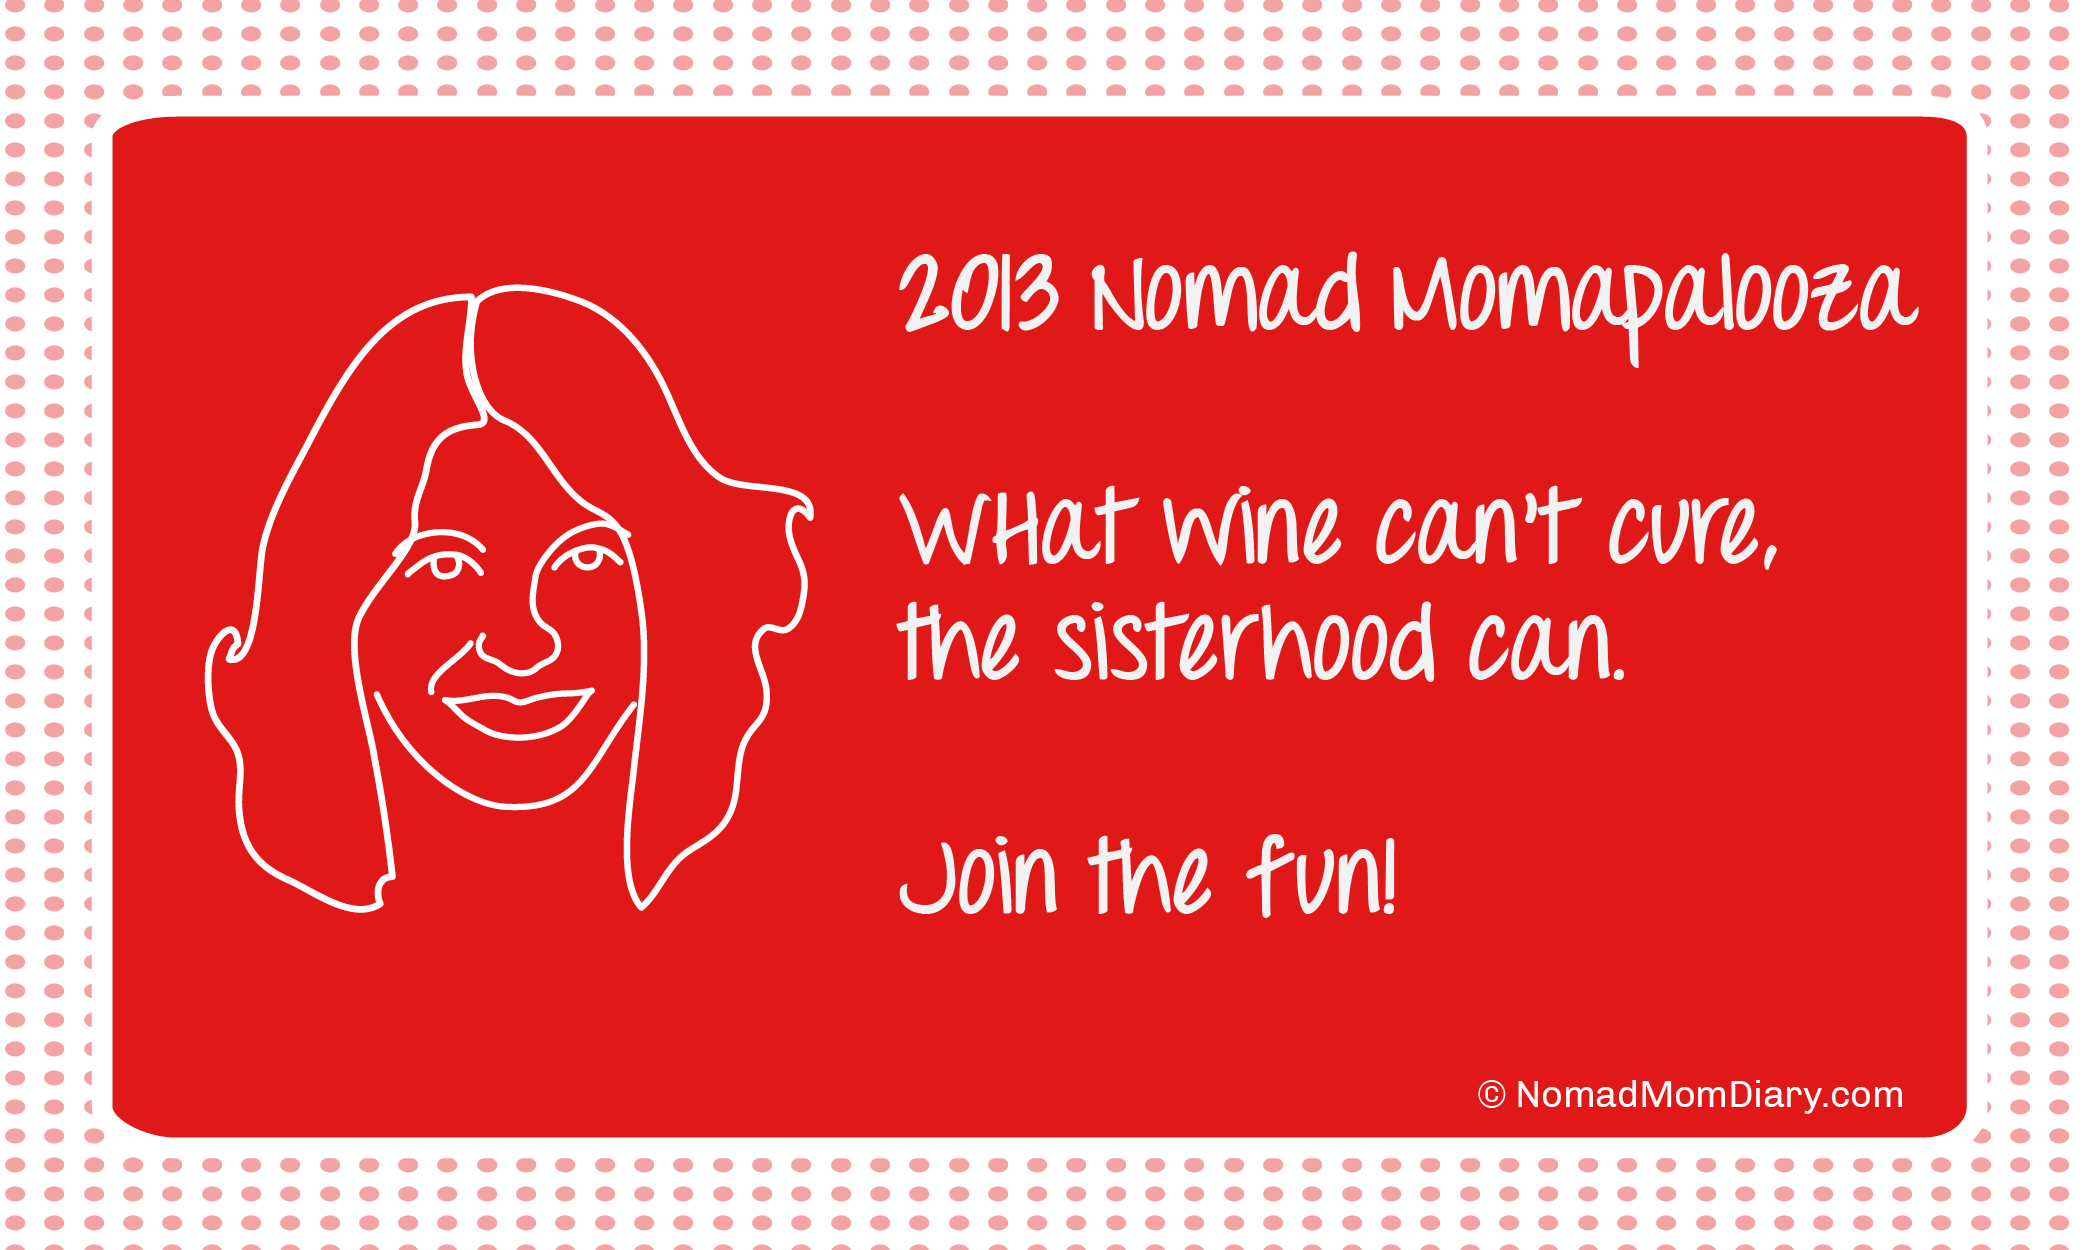 The Nomad Momapalooza, what win can't cure, the sisterhood can.